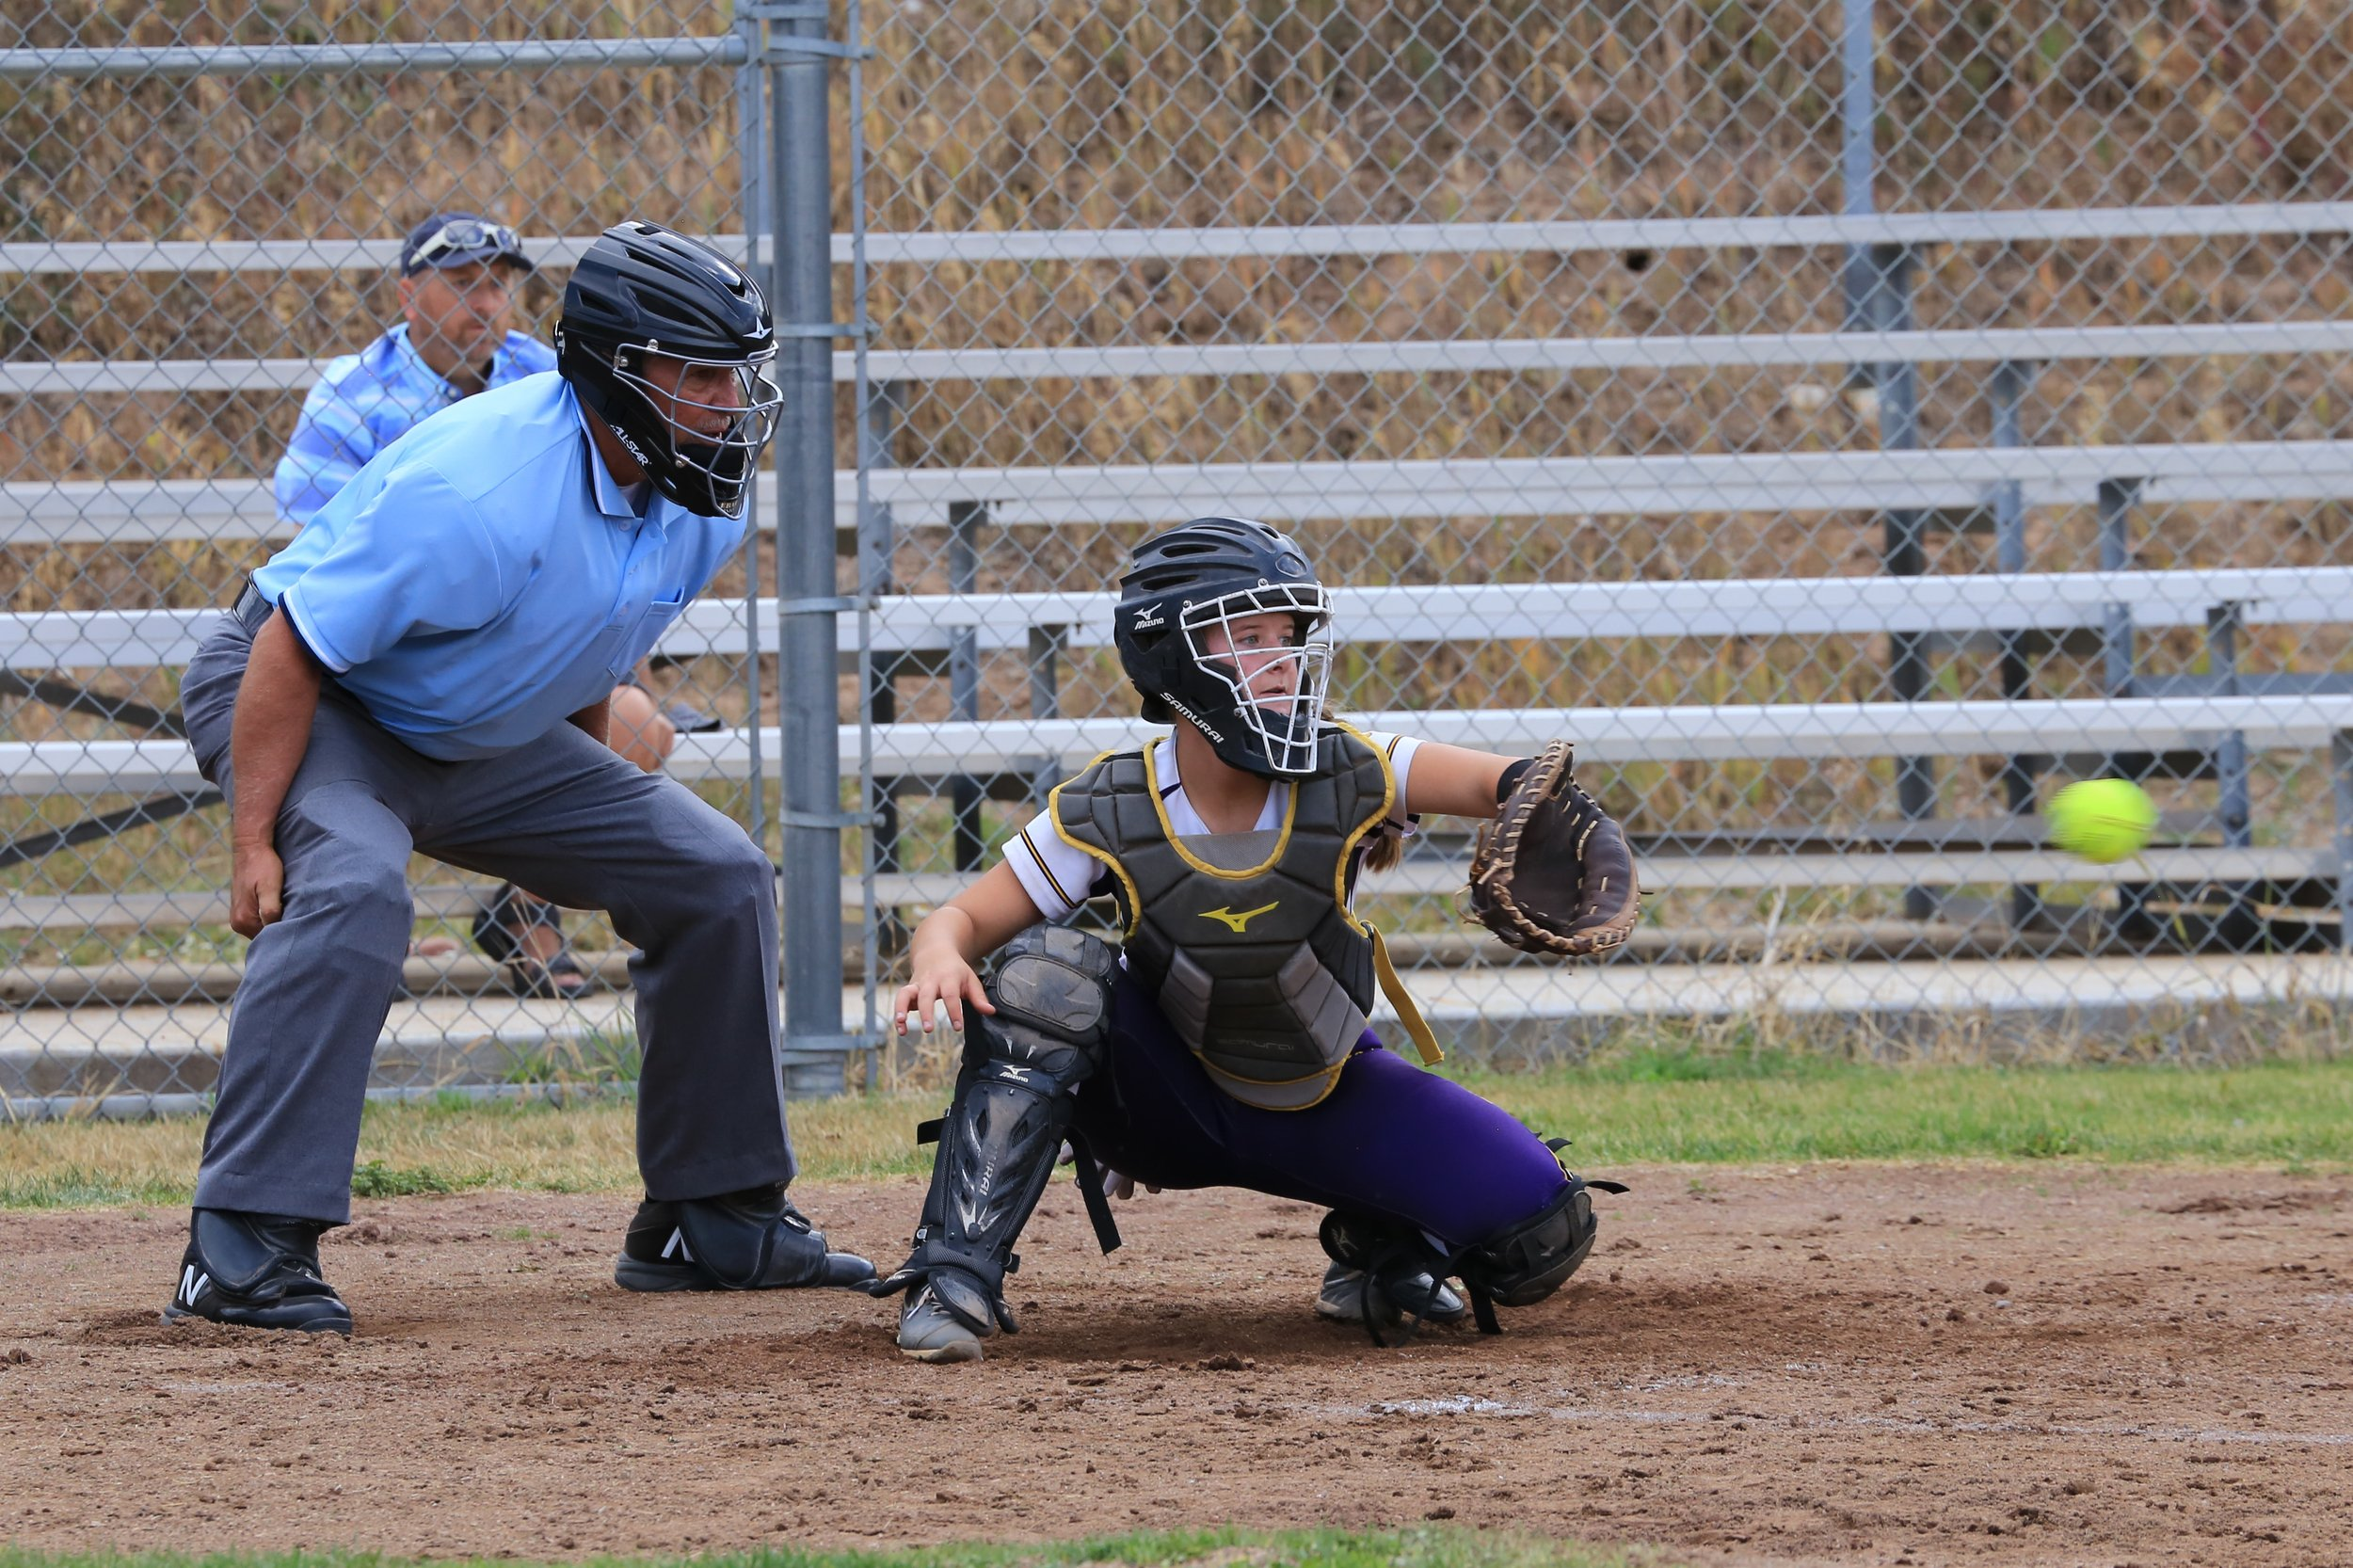 Roaring Fork student Maya Lindgren earned honors for their role on the Basalt softball team. Photo by Sue Rollyson